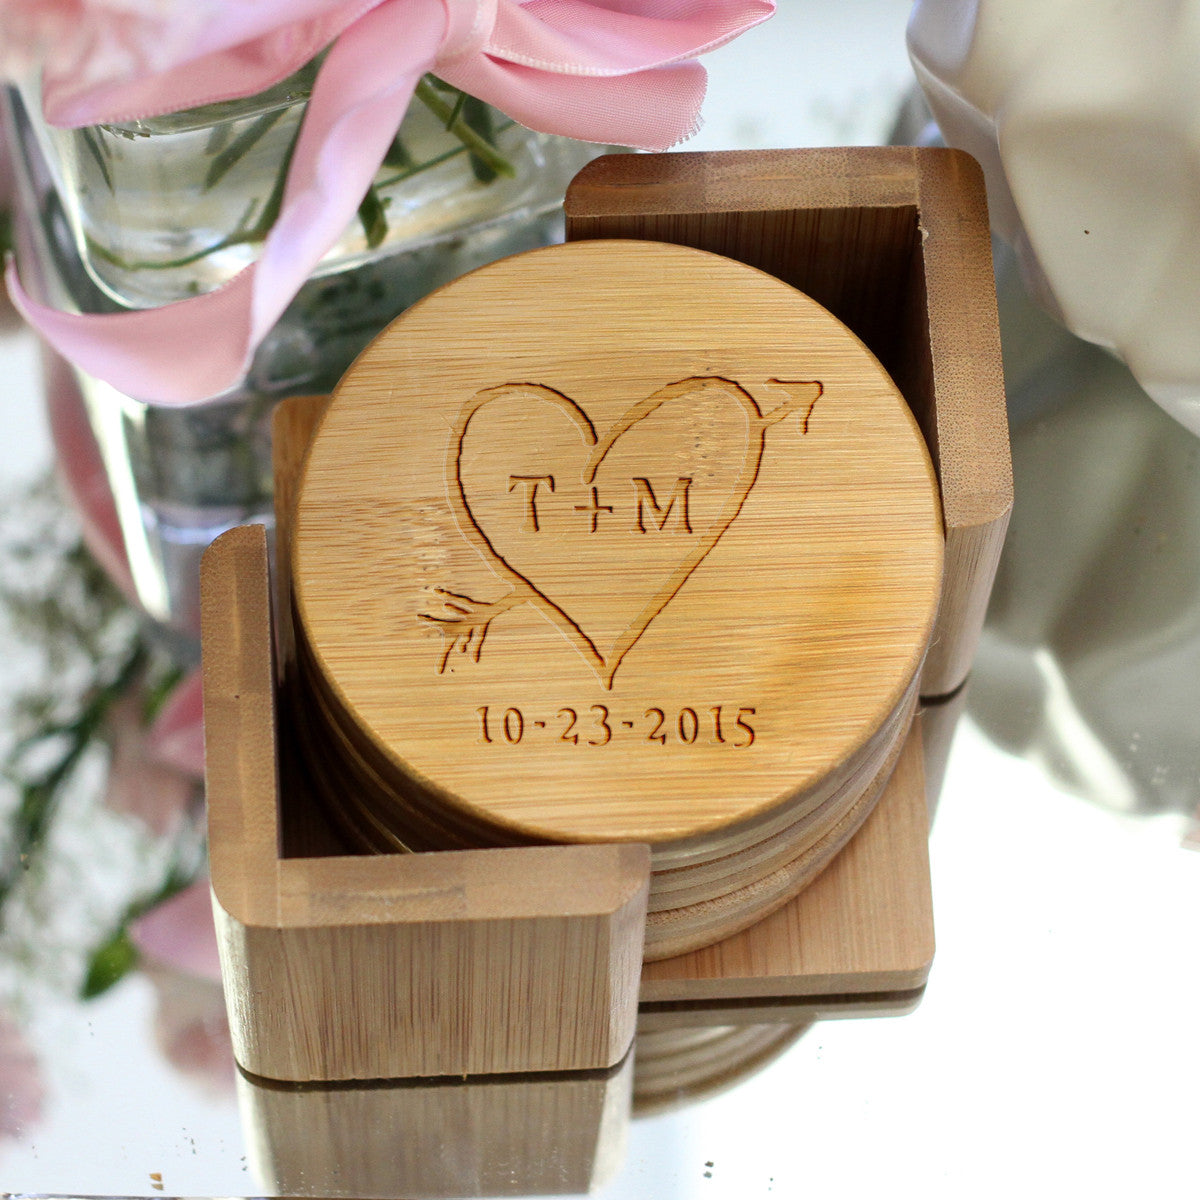 Personalized Engraved Bamboo Coaster Set Rustic Heart Arrow